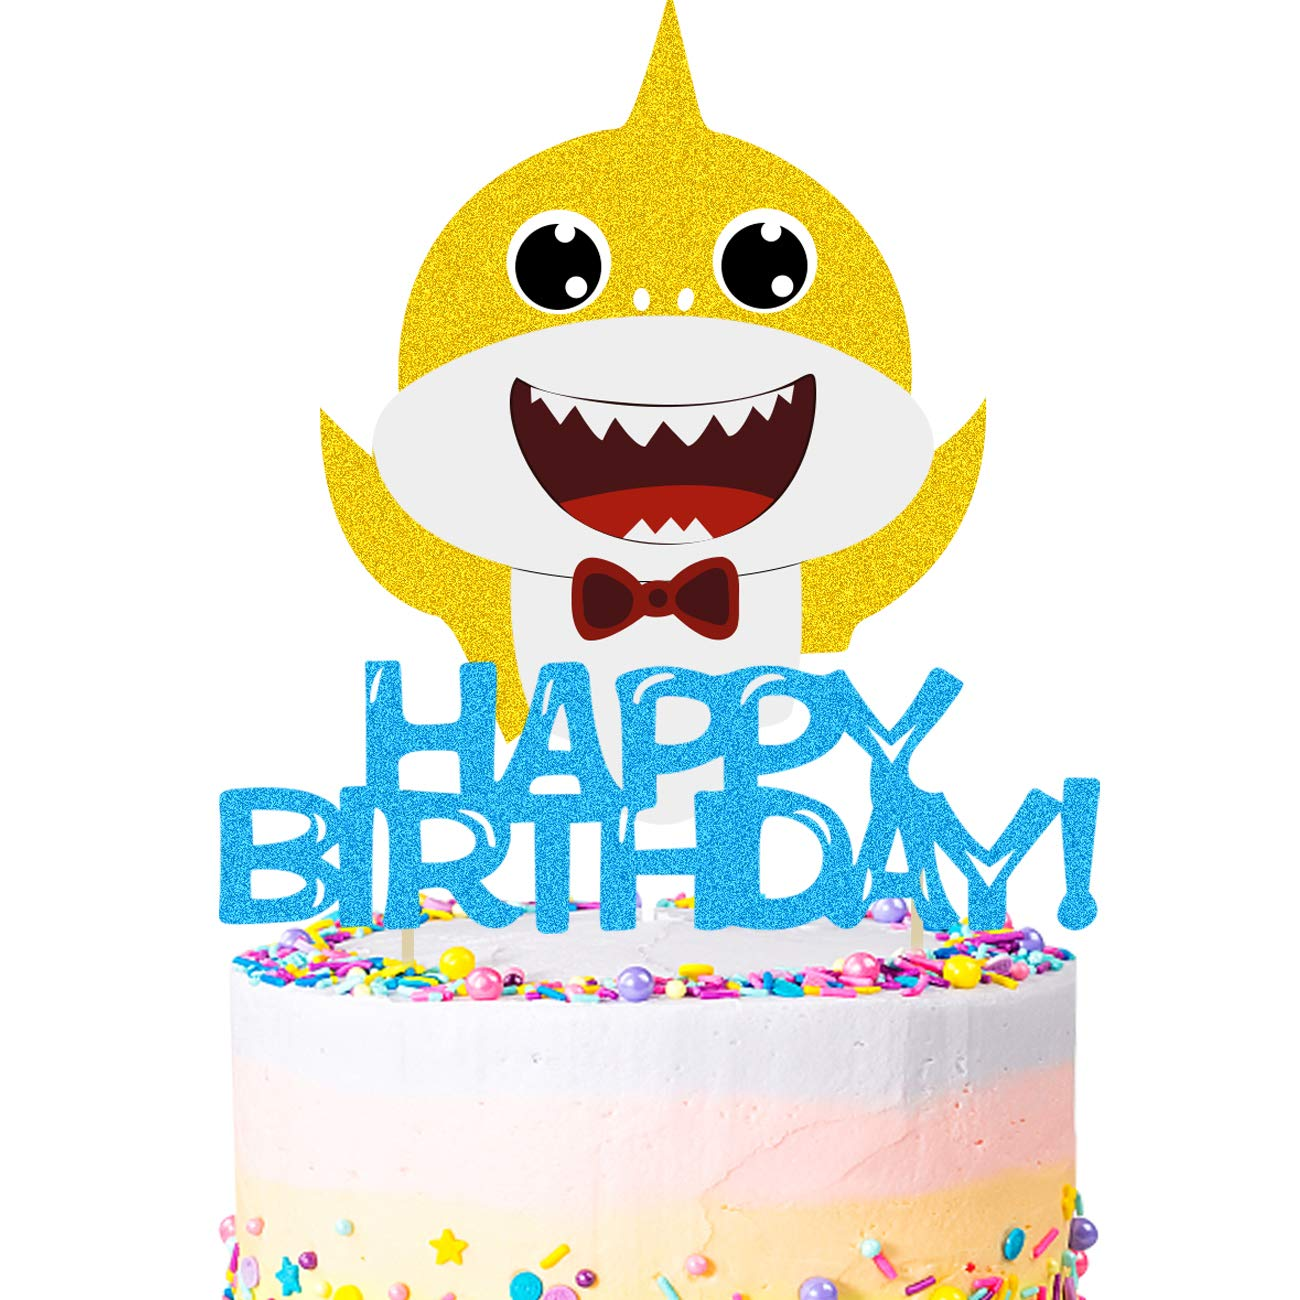 Cake Topper,Cadeya Cake Topper 5.9 x 5.9 Inches,Happy Birthday Cake Topper/Baby Little Shark Cake Decorations for Baby,Shower Birthday Party Supplies